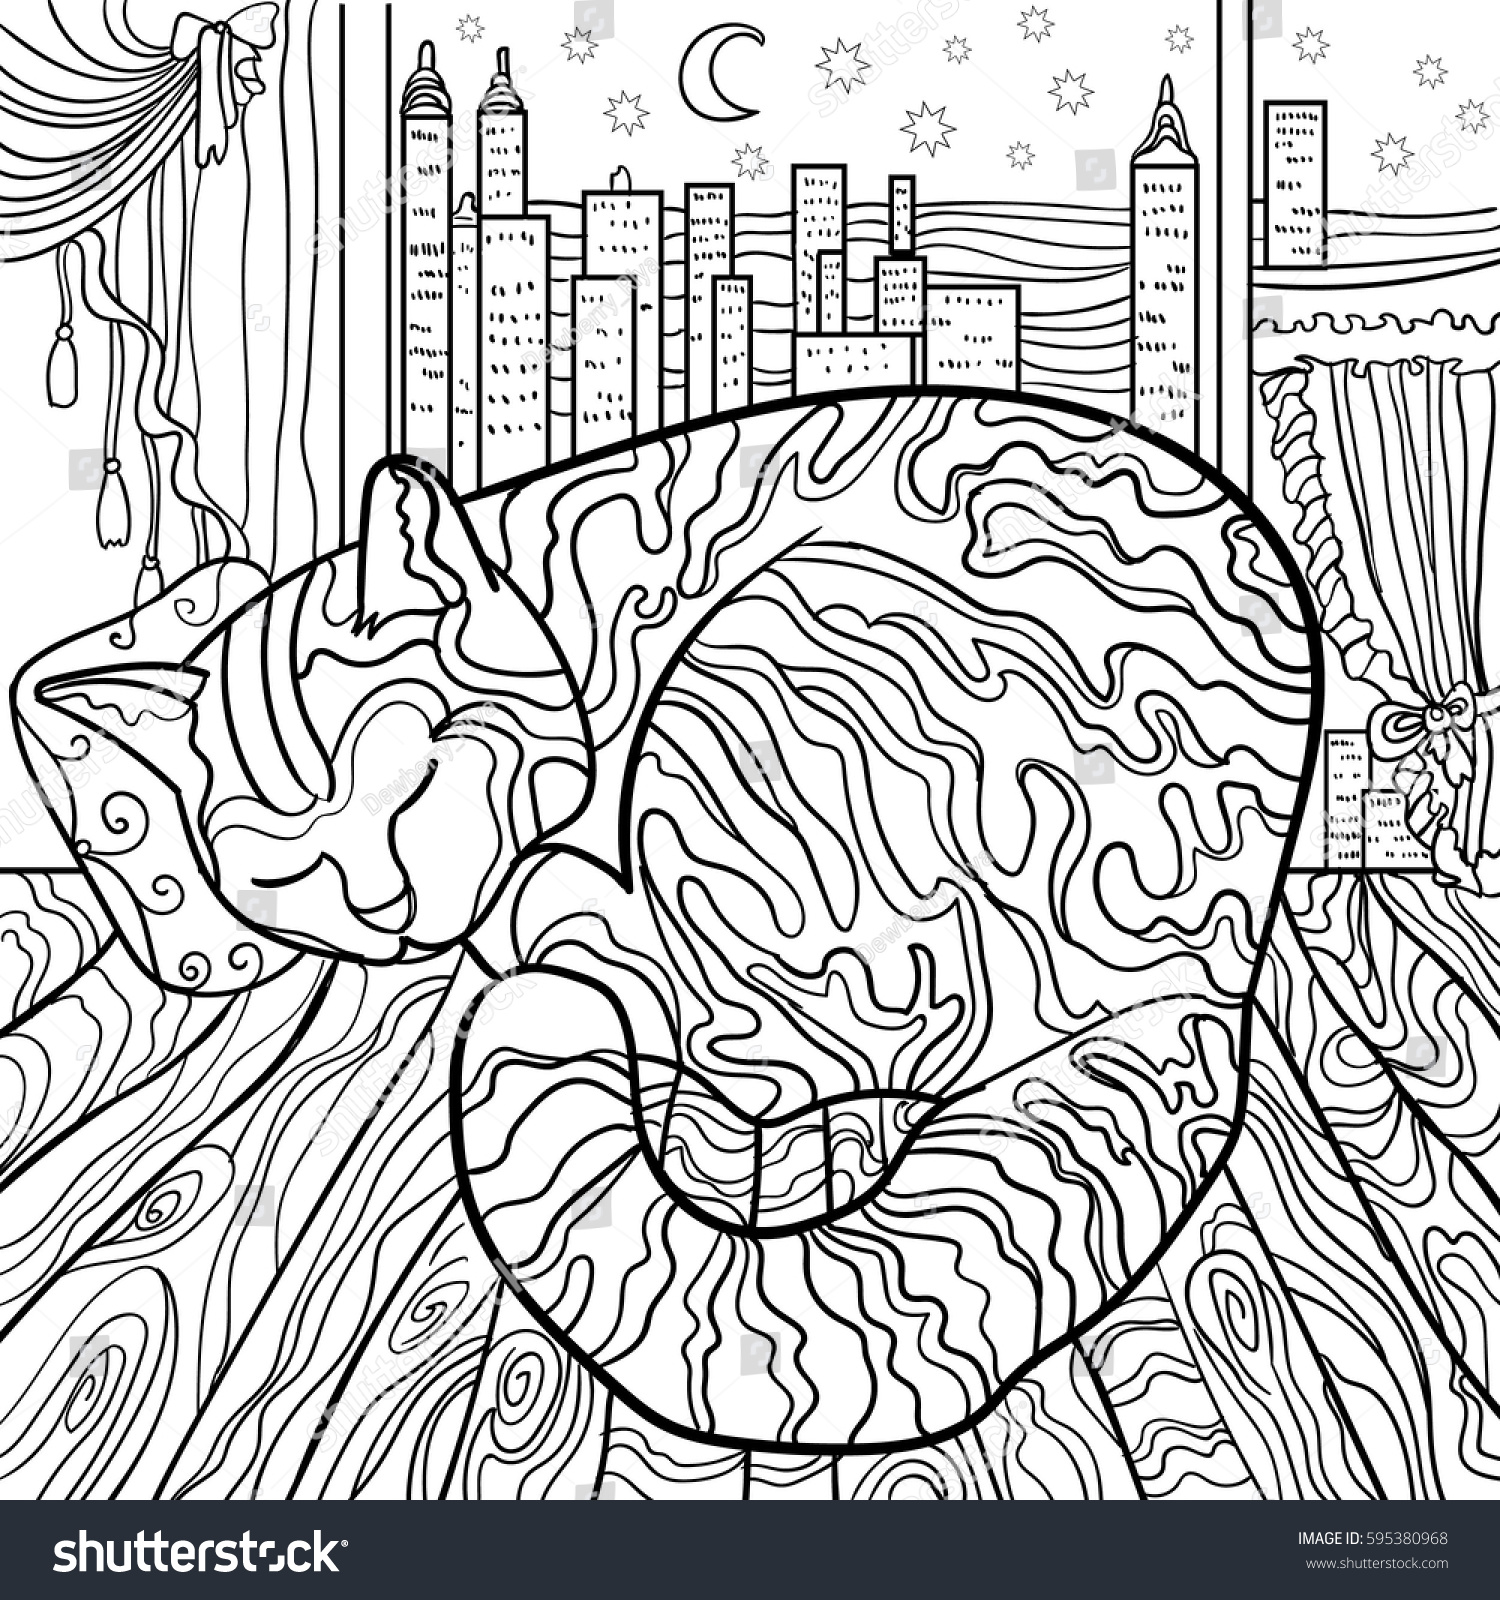 Beautiful Kitten Vector Illustration Cat Sleeps Doodle Coloring Book For Adults